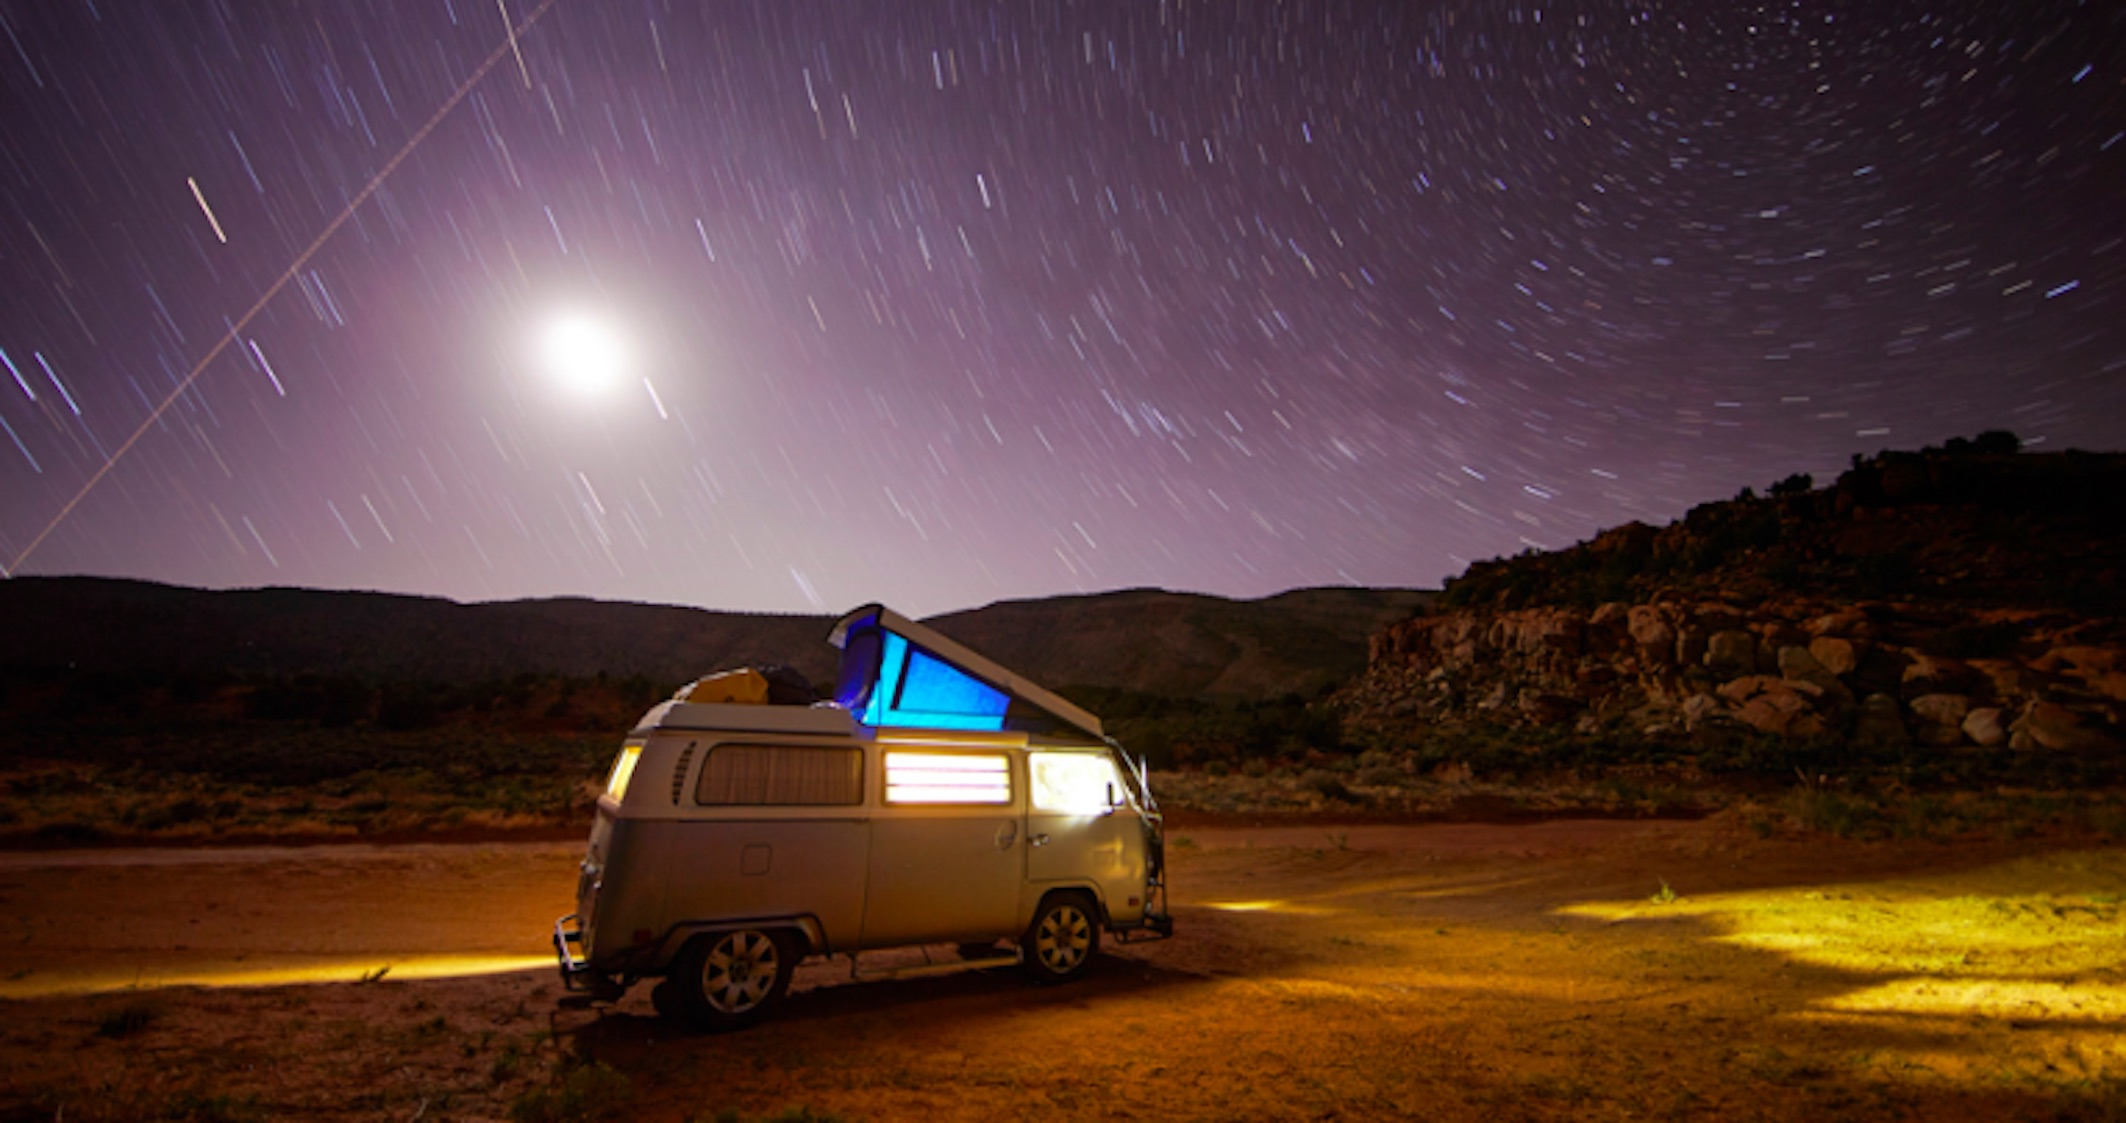 Solar Panels For Your Home >> 10 VW buses that will inspire you to ditch your day job ...